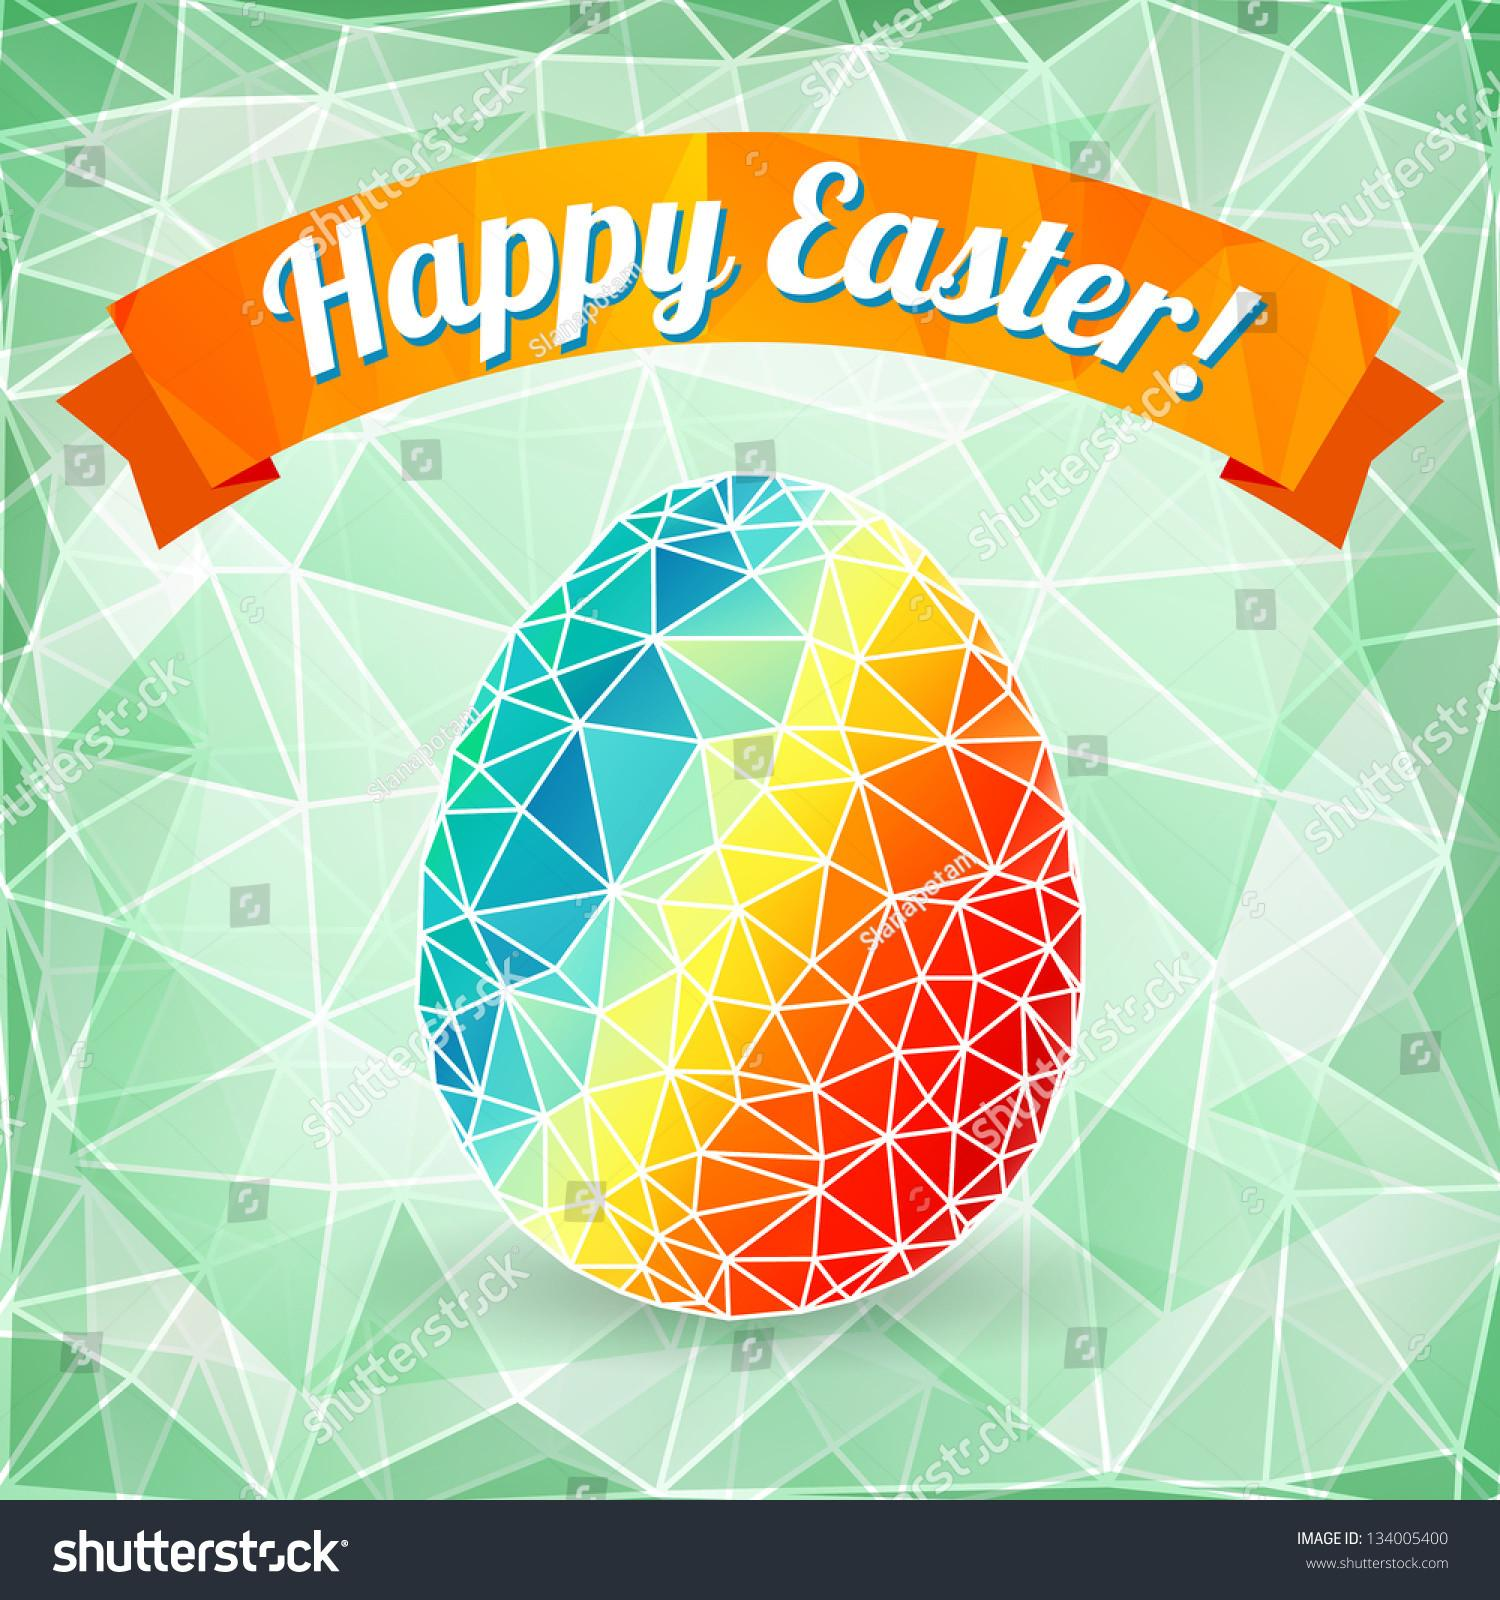 Colorful Easter Egg Abstract Geometric